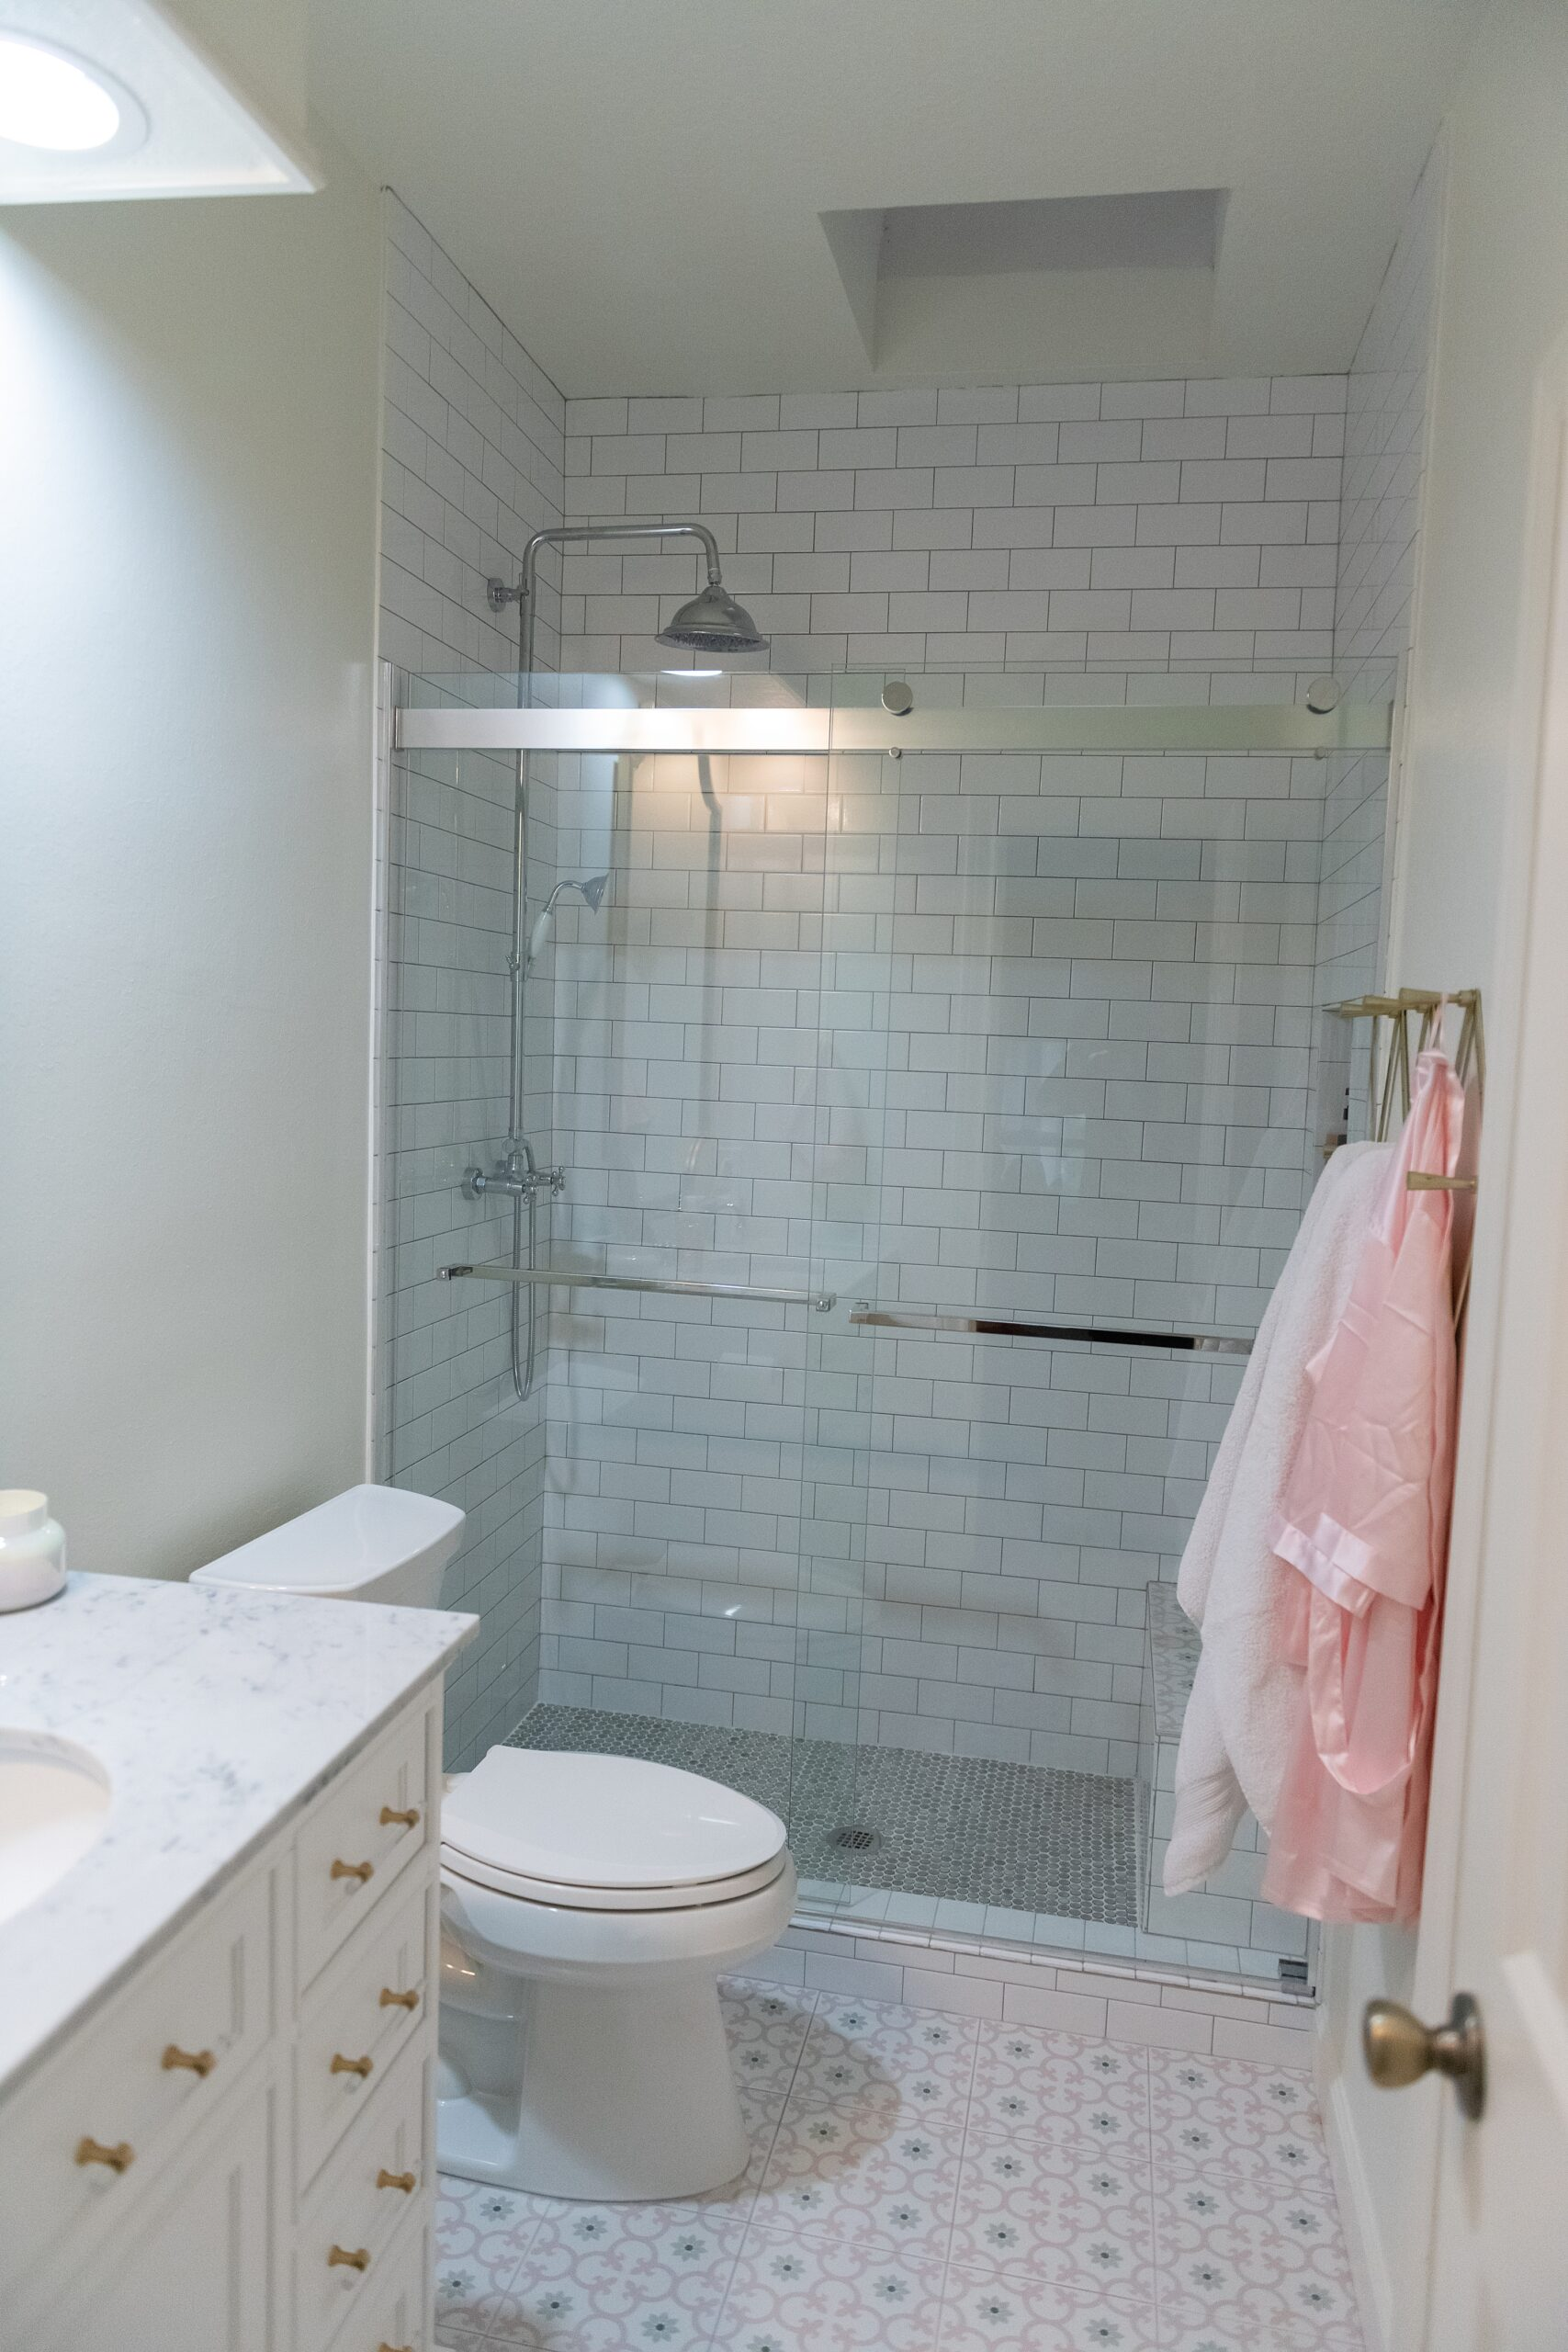 Girls Bathroom by popular Houston life and style blog, Fancy Ashley: image of a bathroom with pink and grey tile, white vanity with marble counter top and gold drawer pulls, gold towel hooks, and a walk in shower with subway tiles and grey penny tile flooring.